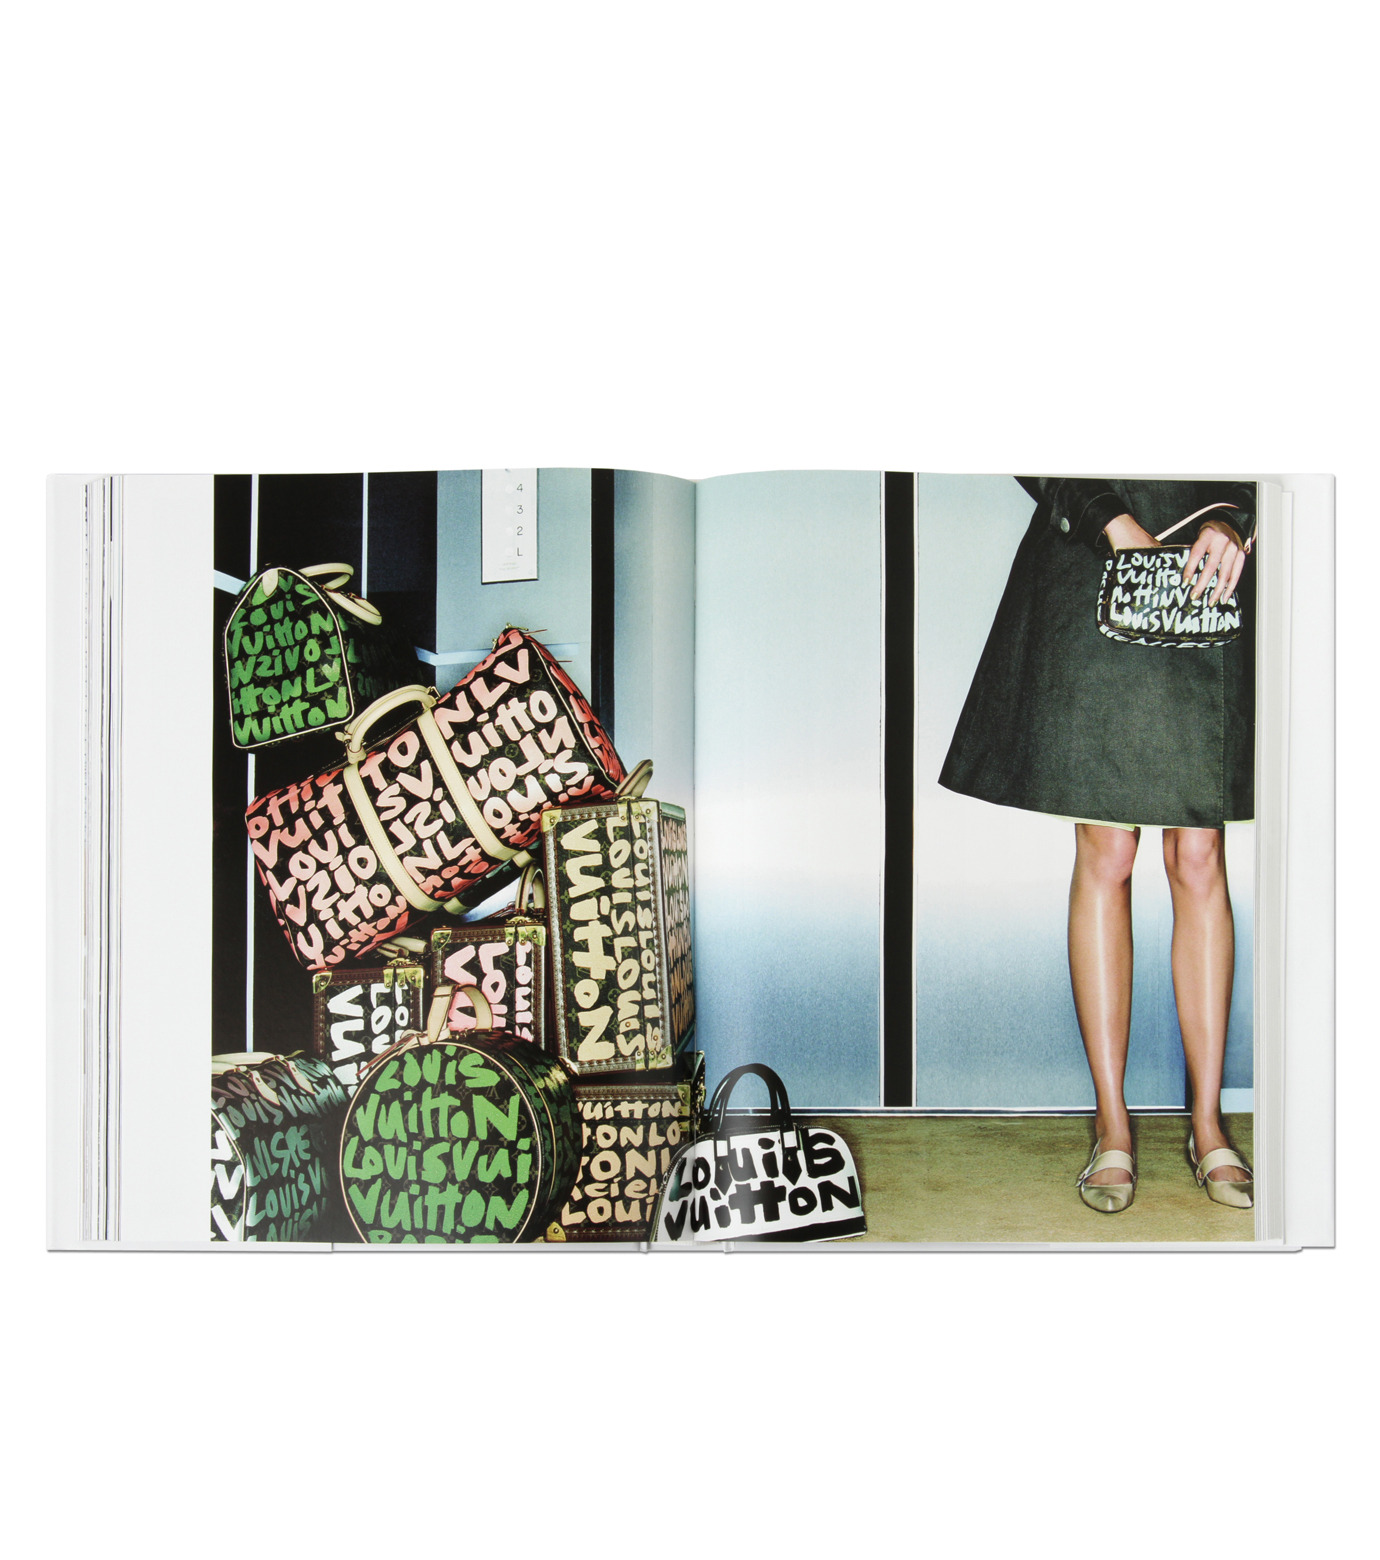 ArtBook(アートブック)のLouis Vuitton Fashion Photography.-GRAY(インテリア/OTHER-GOODS/interior/OTHER-GOODS)-8478-4331-2-11 拡大詳細画像3